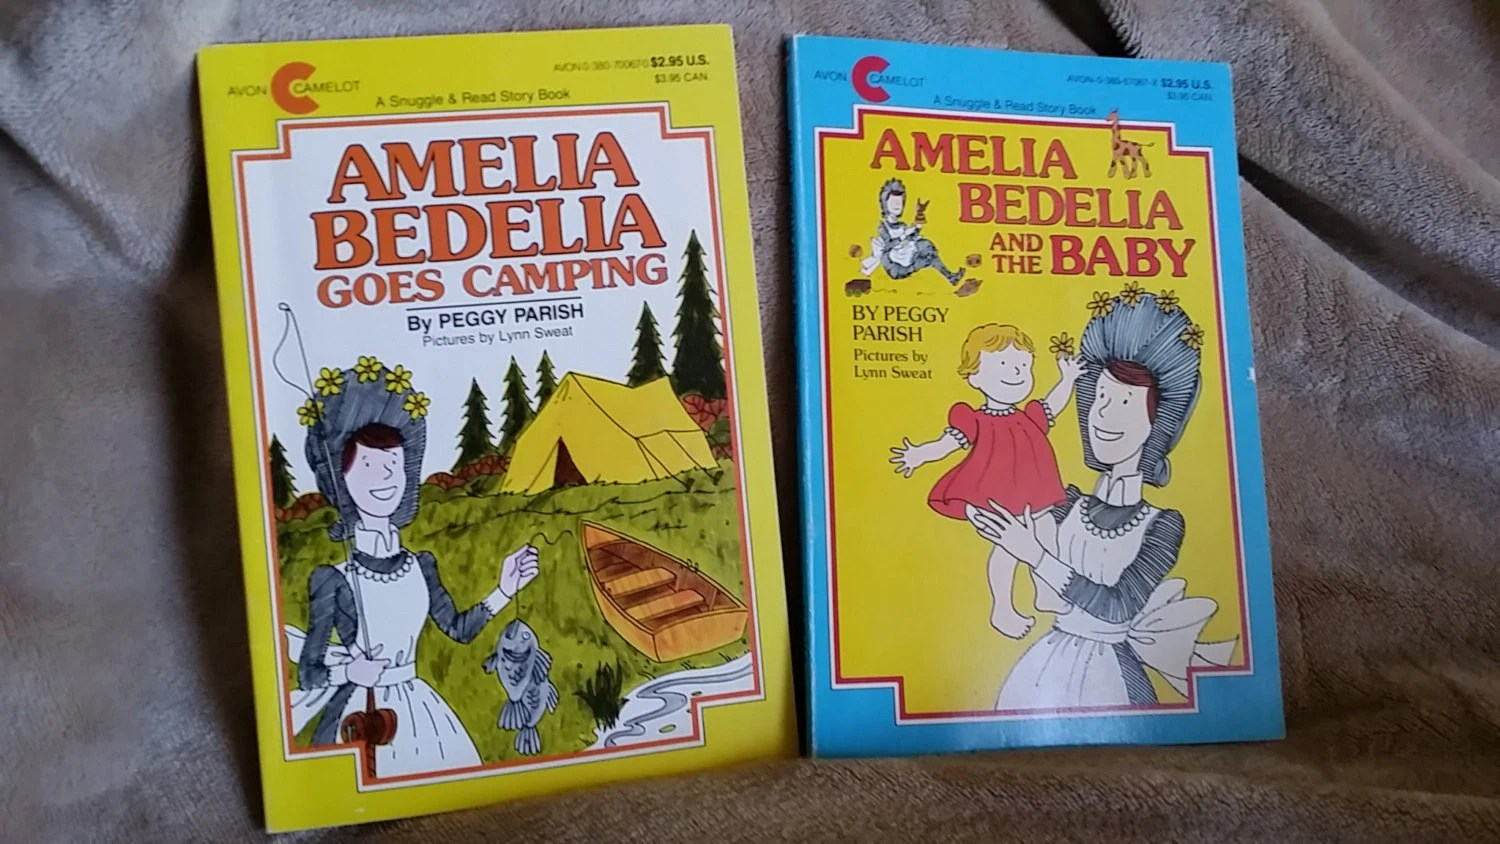 Amelia Bedelia And The Baby And Amelia Bedelia Goes Camping